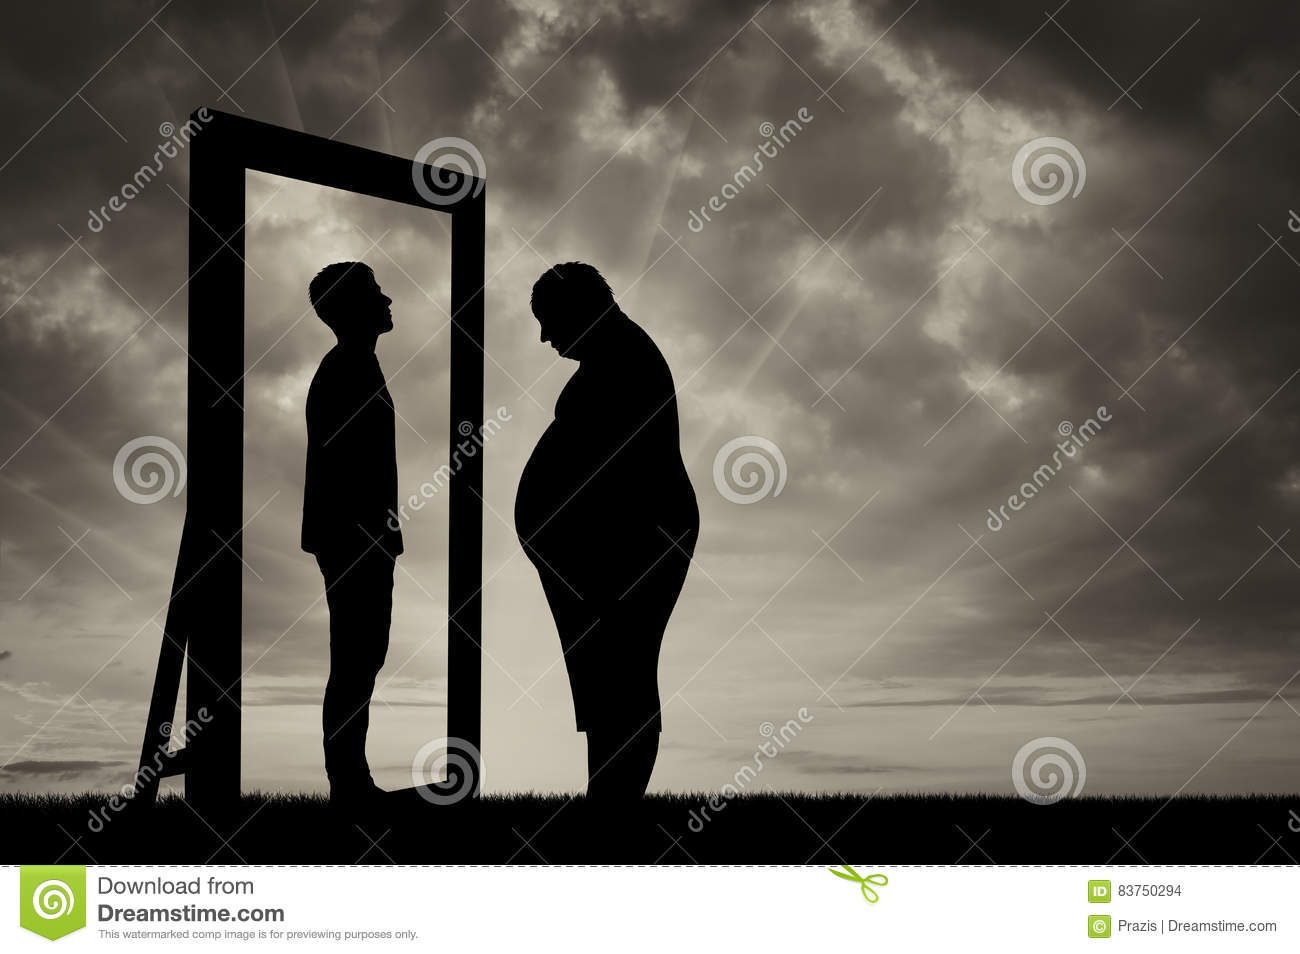 Fat Sad Man And His Reflection In Mirror Of A Normal Man Stock Illustration